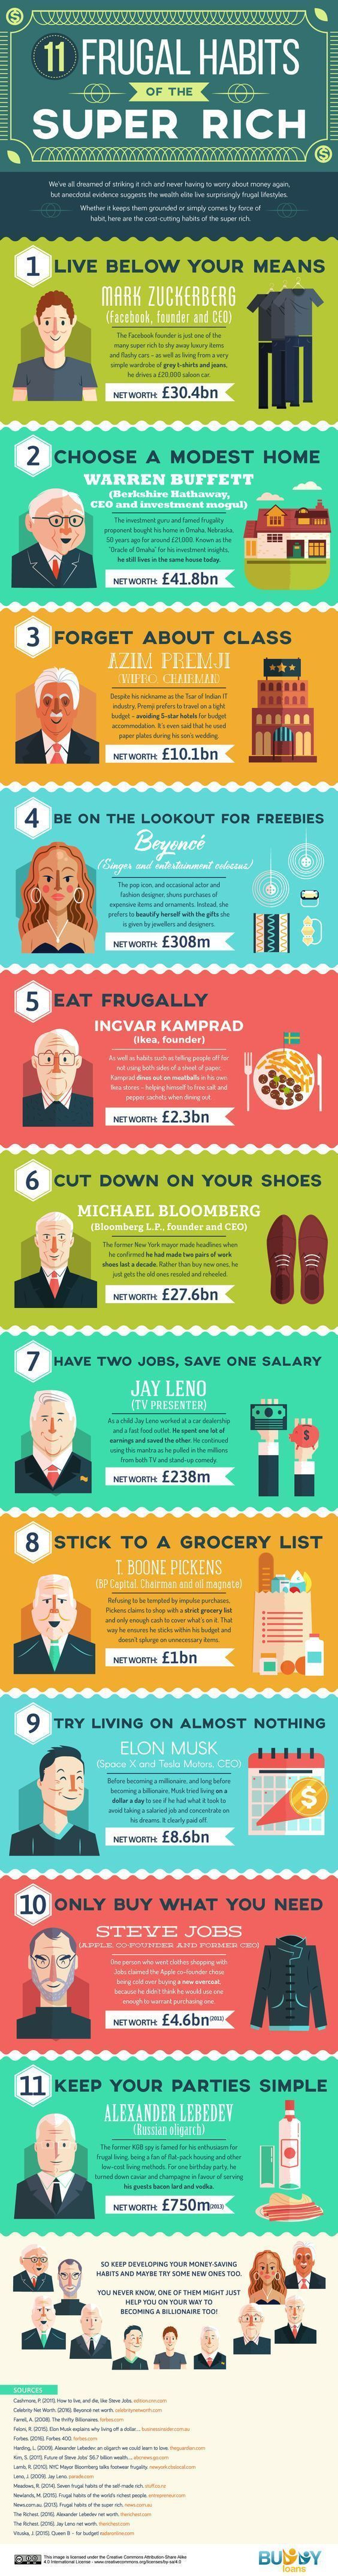 10 Amazing graphs that will help you save money. Life changing info!!!